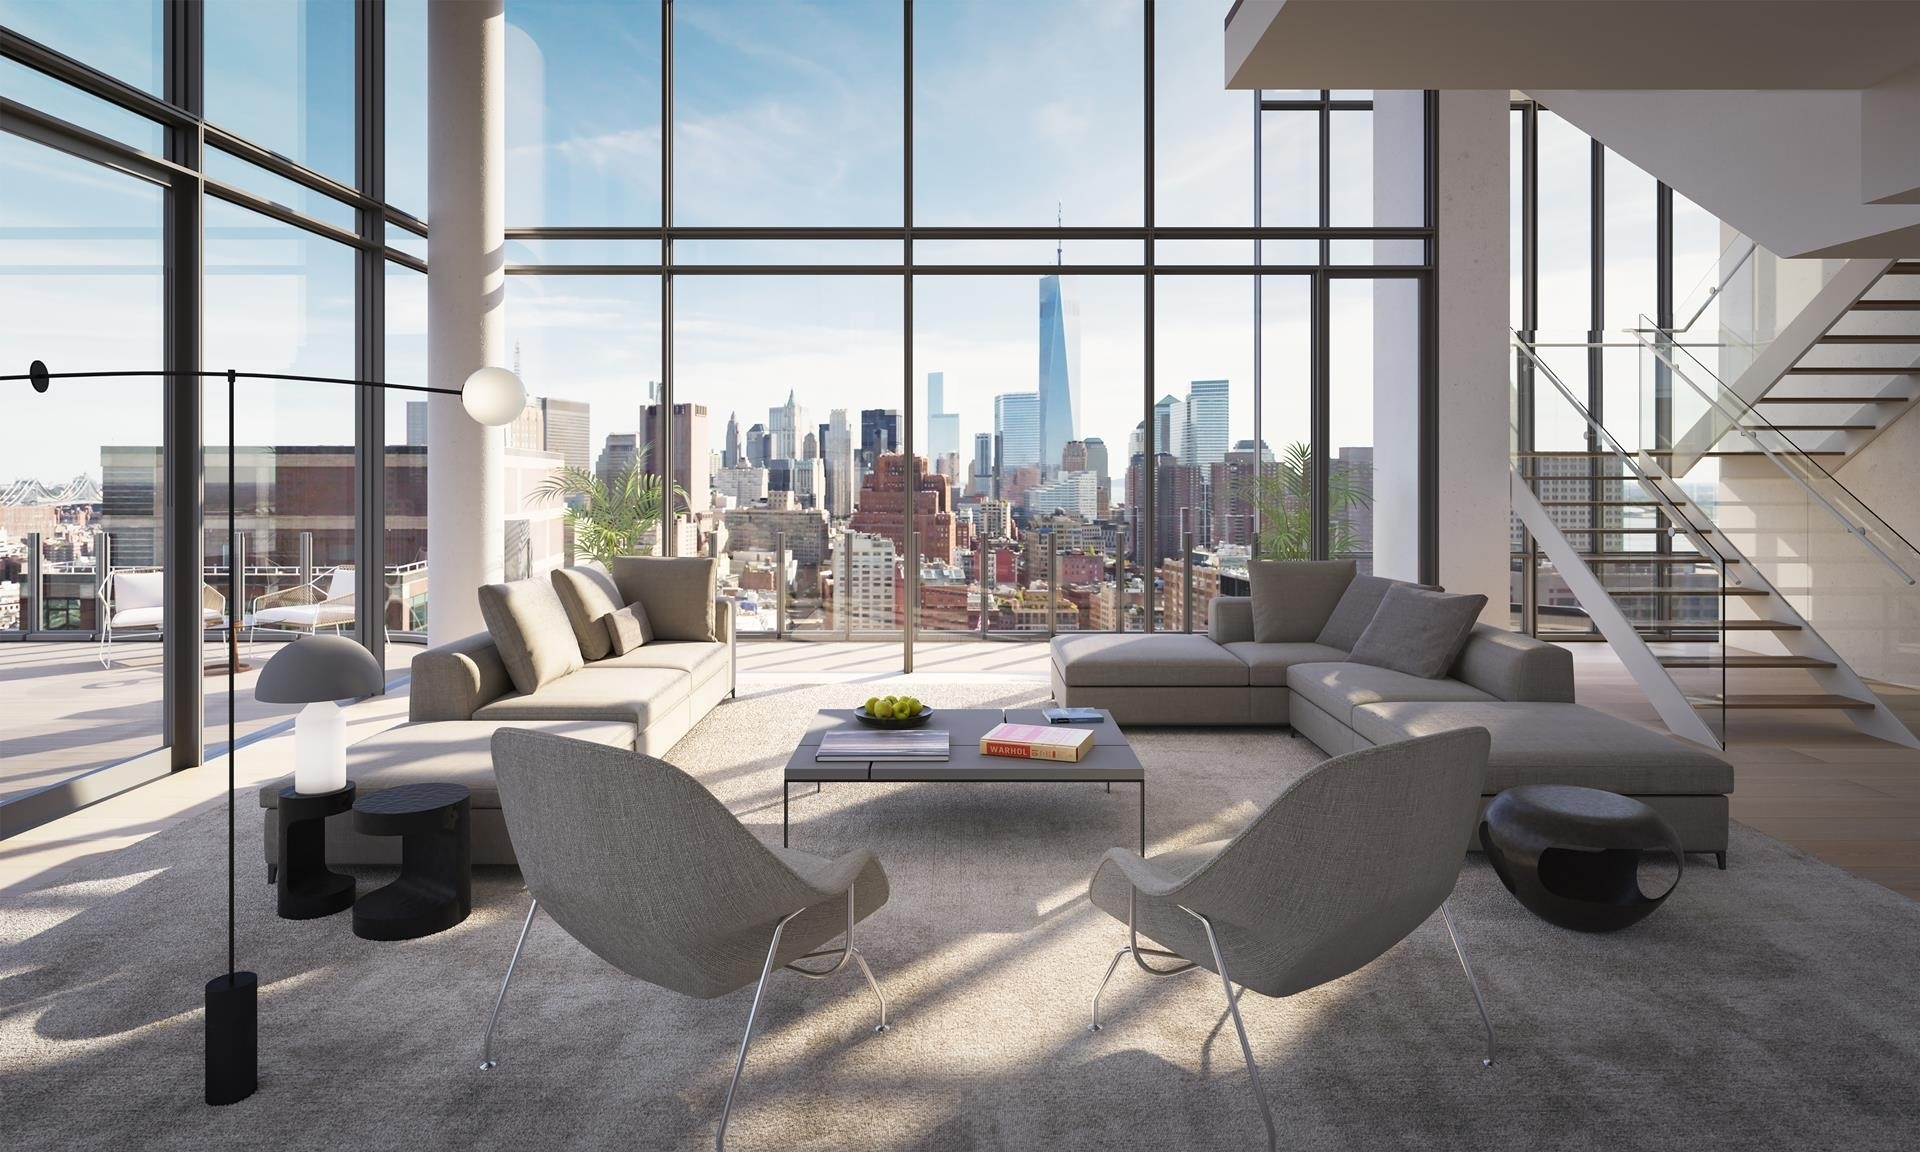 Condominium for Sale at 565 BROOME ST , SOUTHPHB Hudson Square, New York, NY 10013